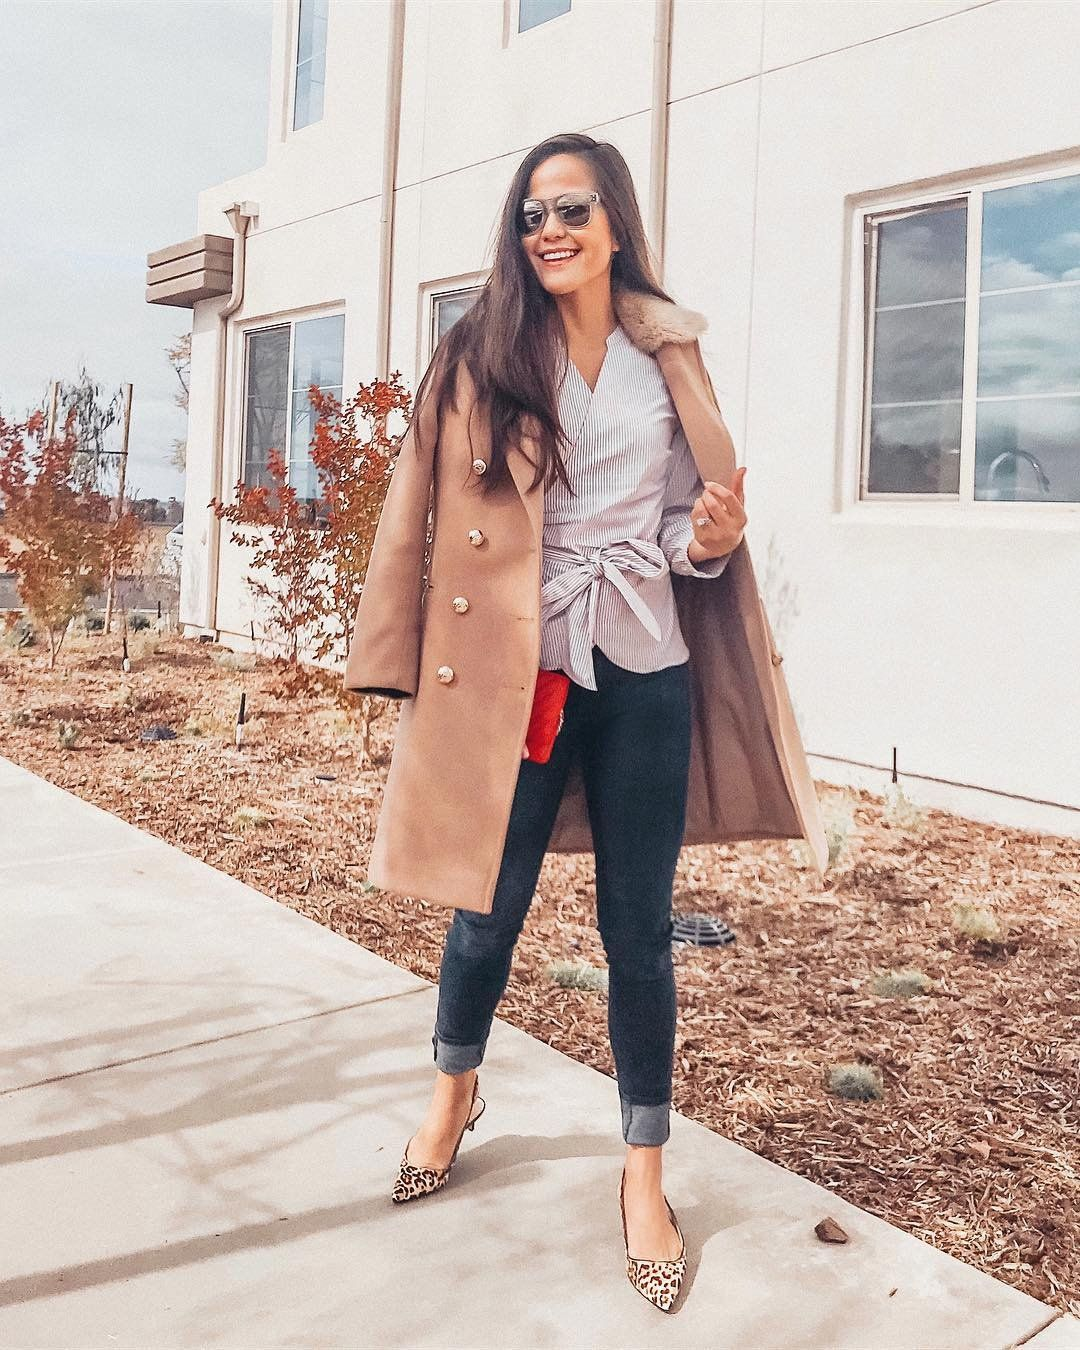 Lydia Webb Staying Cozy Chic In Our Ludlow Kitten Heel Kitten Heels Outfit Fall Outfits Heels Outfits